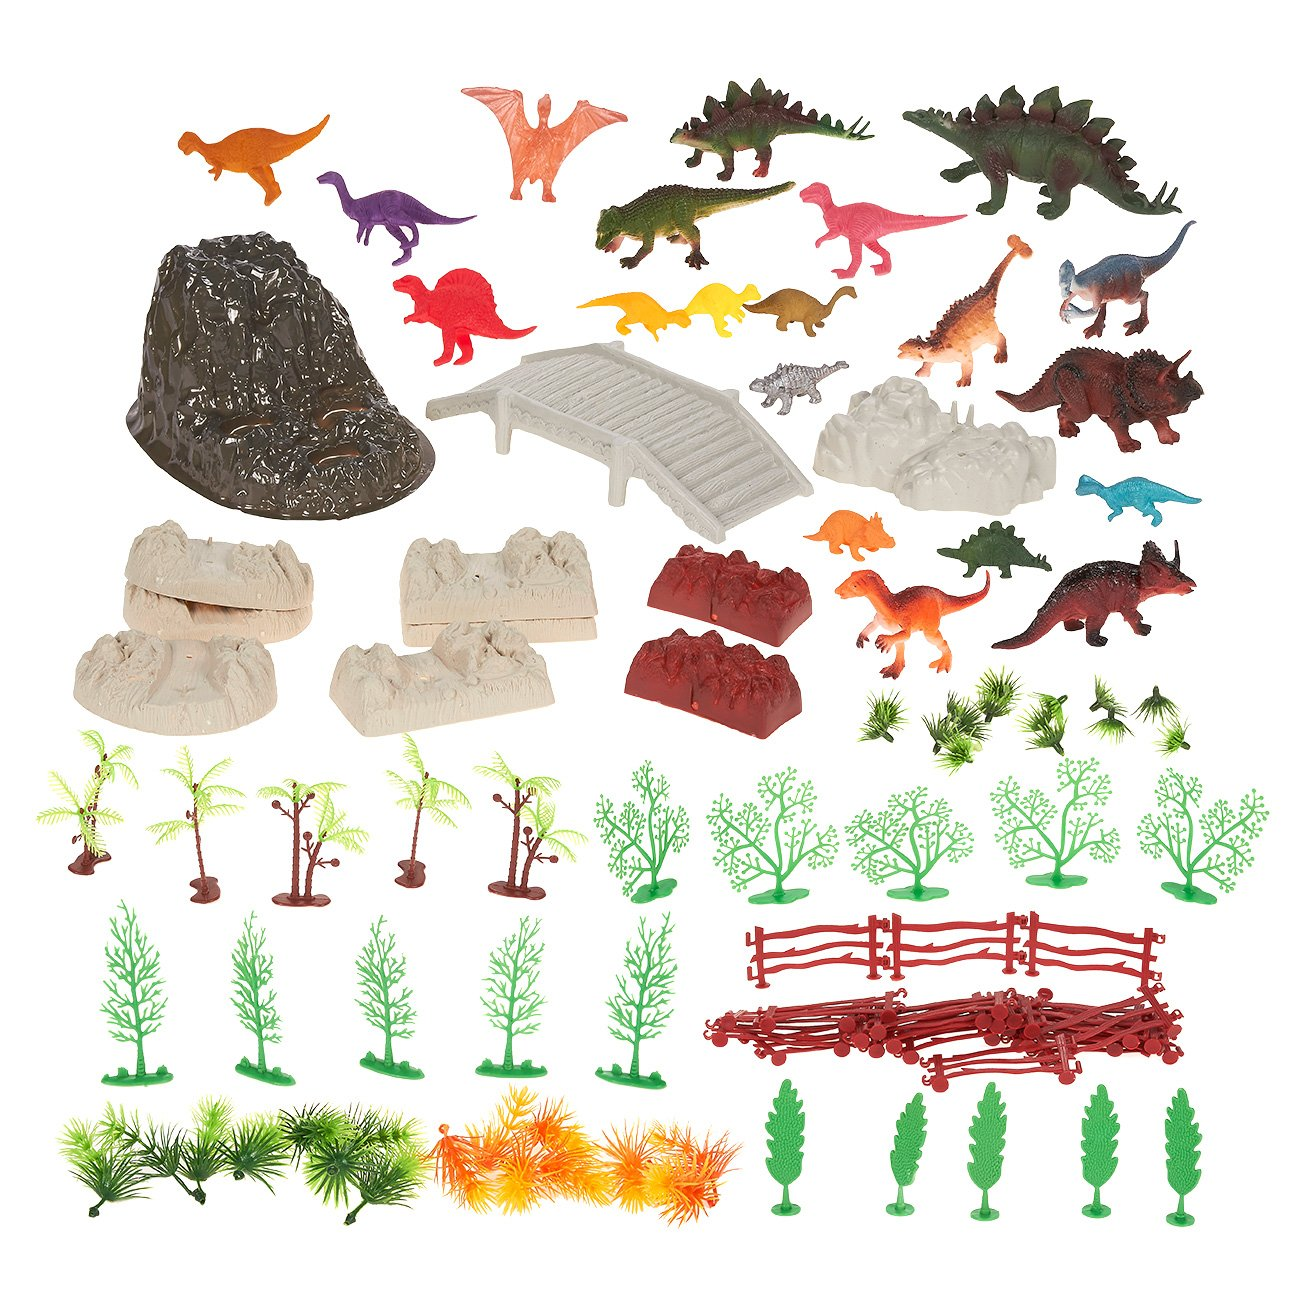 100-Pack Dinosaur Toy Set Figurines - Realistic Plastic Toy Dinosaur Figures Plastic Props Children, Themed Parties, Decorations, Includes Carrying Case - 10.5 x 6.5 x 8.2 inches by Blue Panda (Image #2)